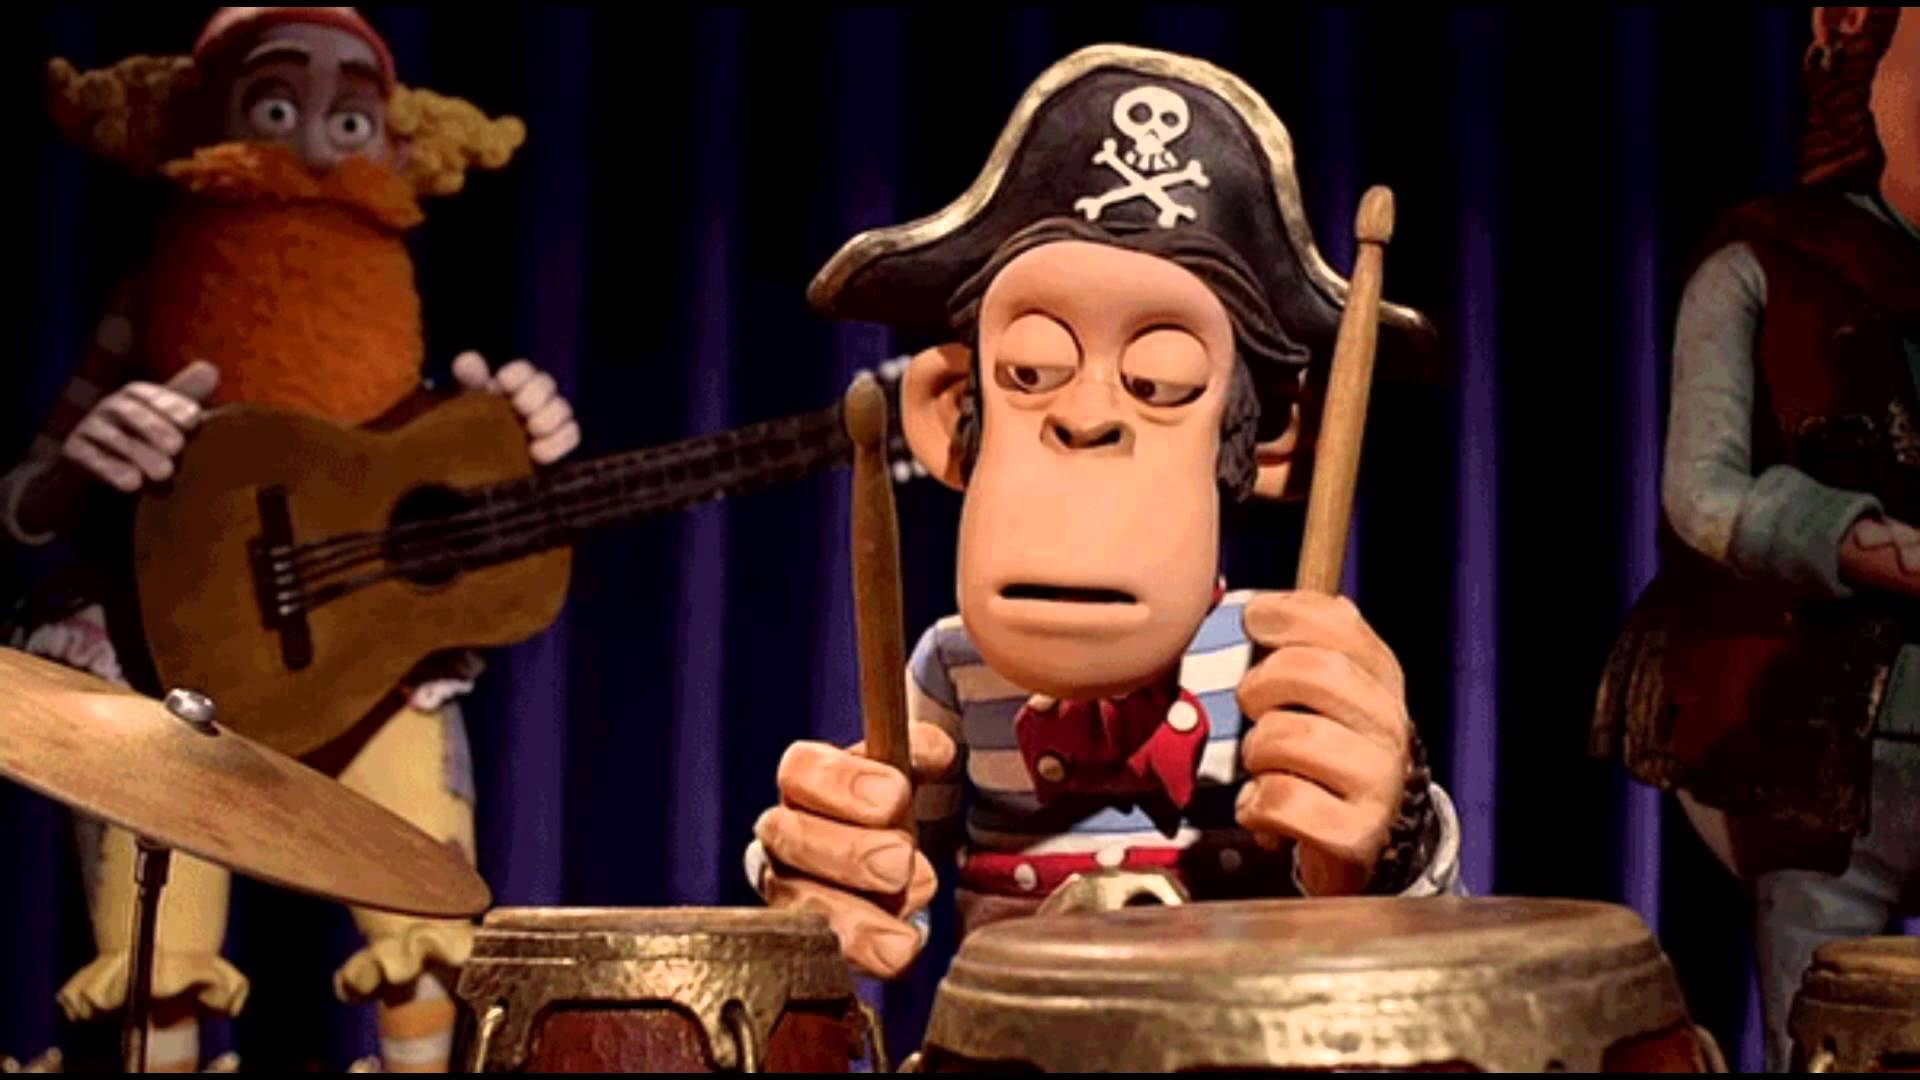 The Best GIF's With Sound 103 #monkey #band #drummer #bored #funny ...